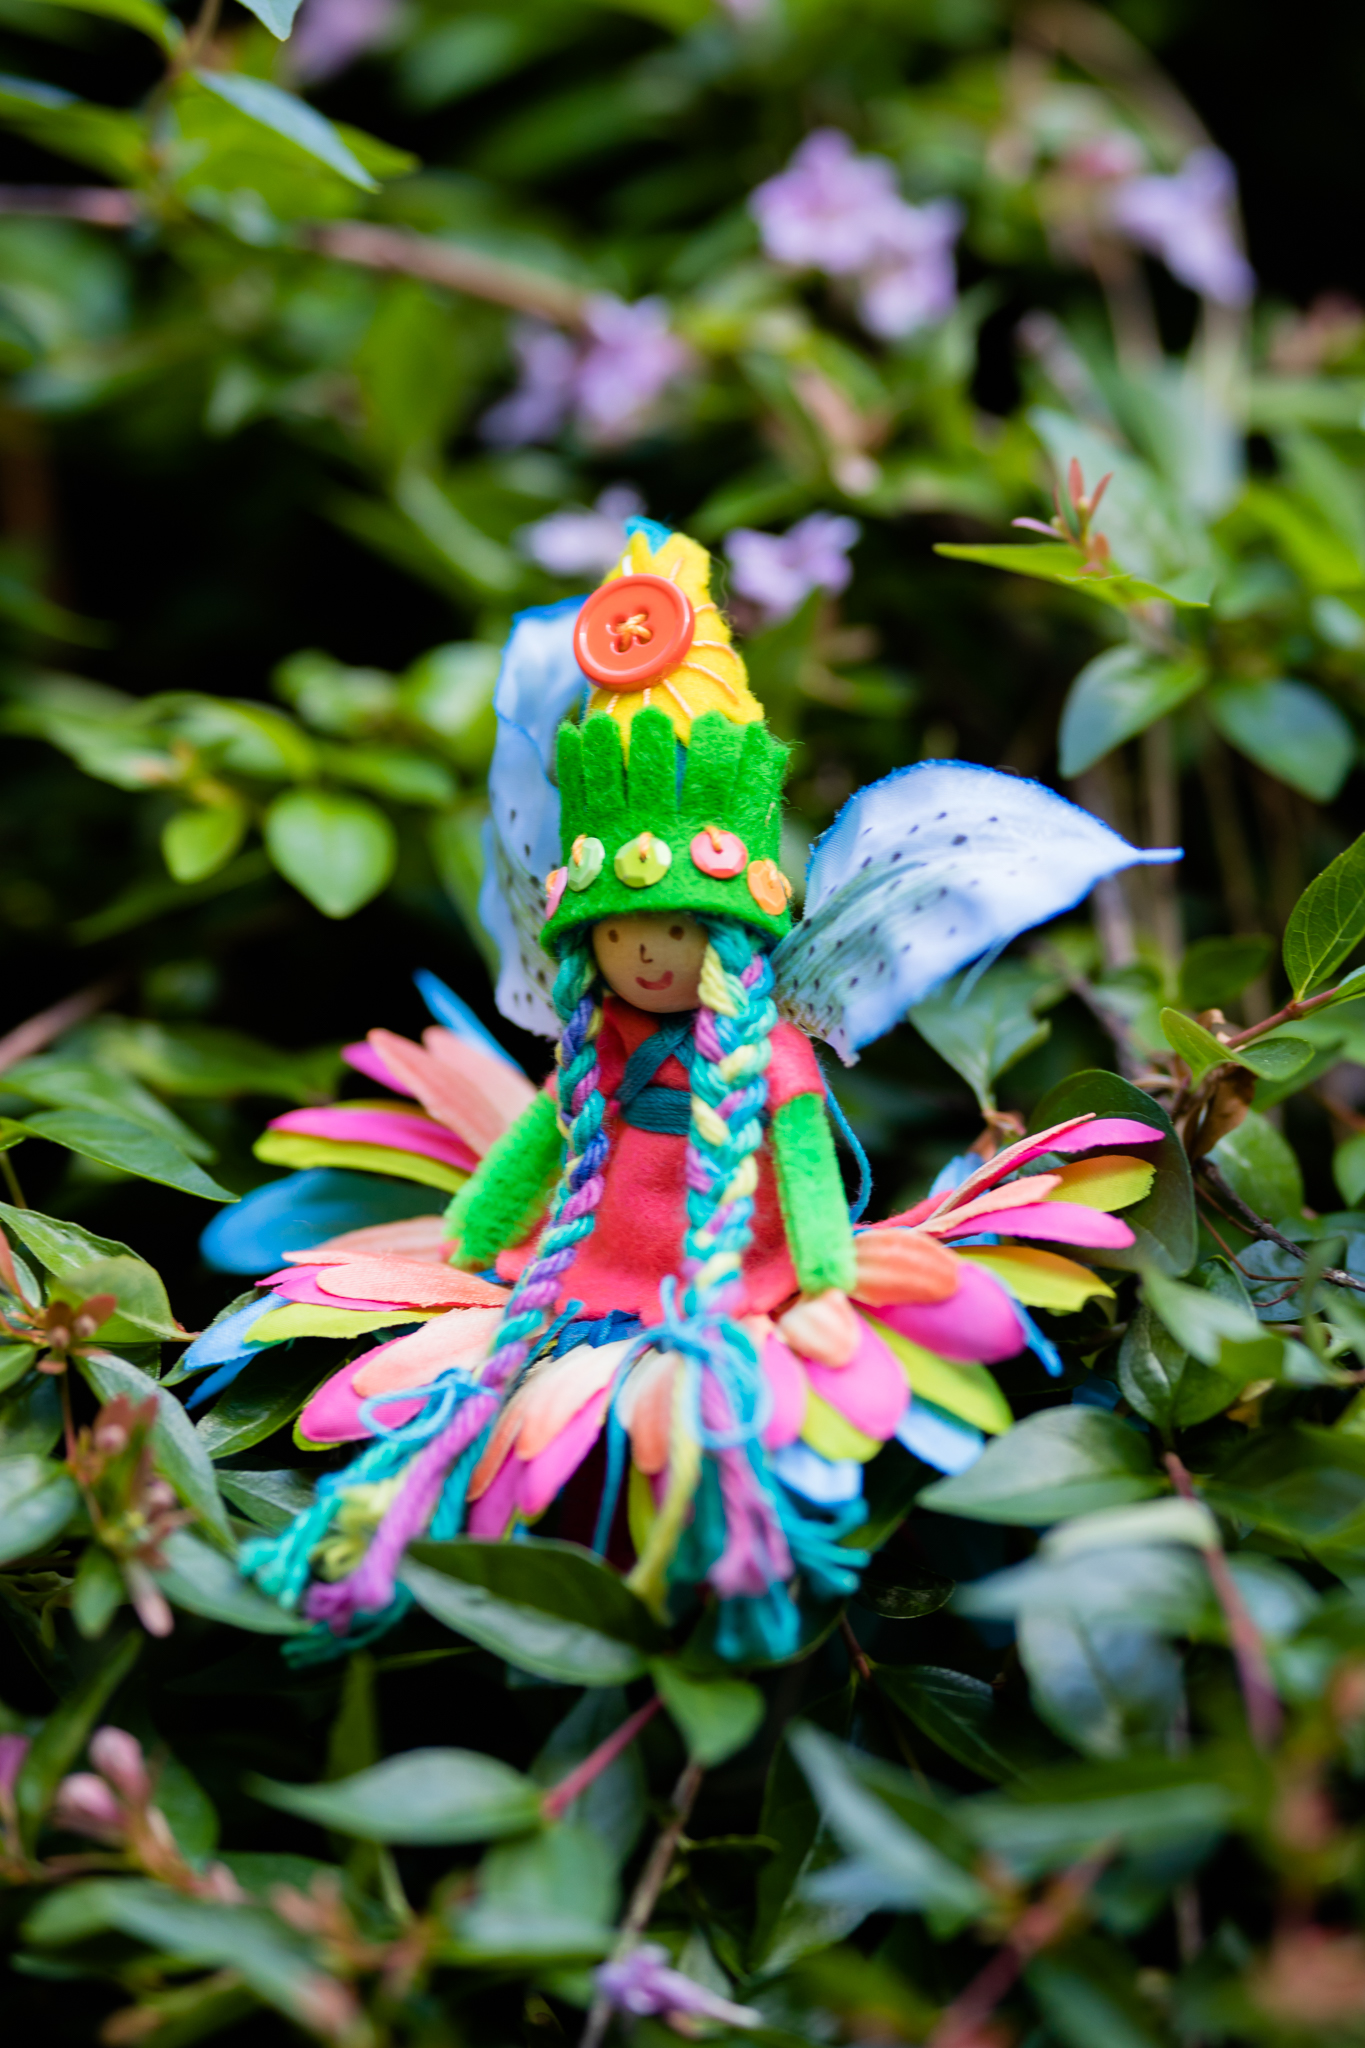 Summer Fairy Doll made with Magical Forest Fairy Crafts through the Seasons book by Lenka Vodicka-Paredes and Asia Currie | Charming and playful crafts for children